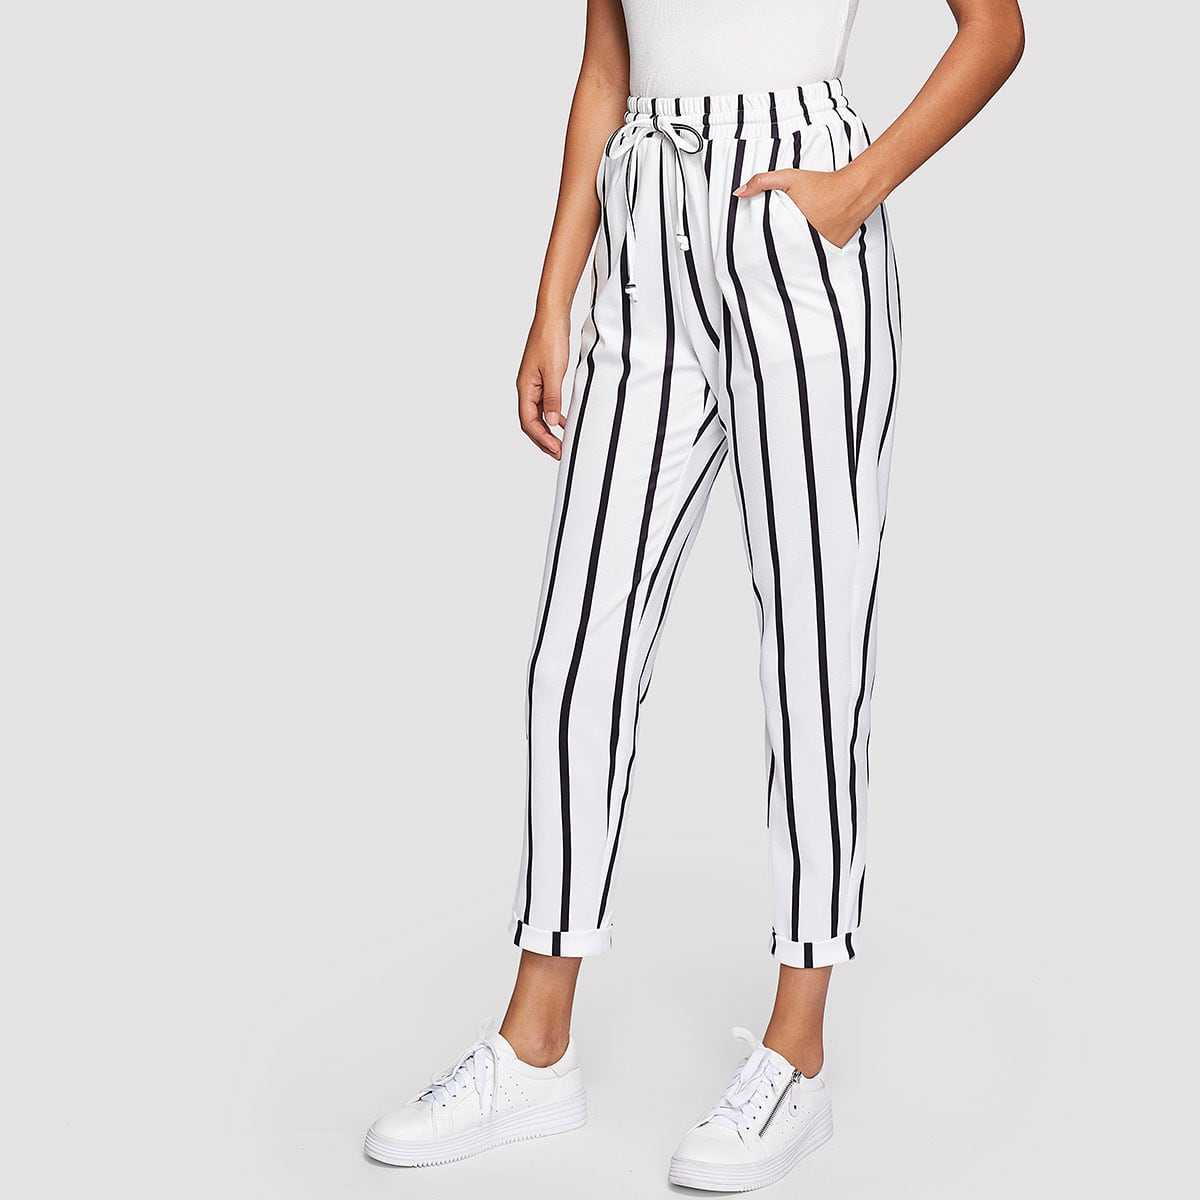 Drawstring Waist Striped Tapered Pants in Black and White by ROMWE on GOOFASH